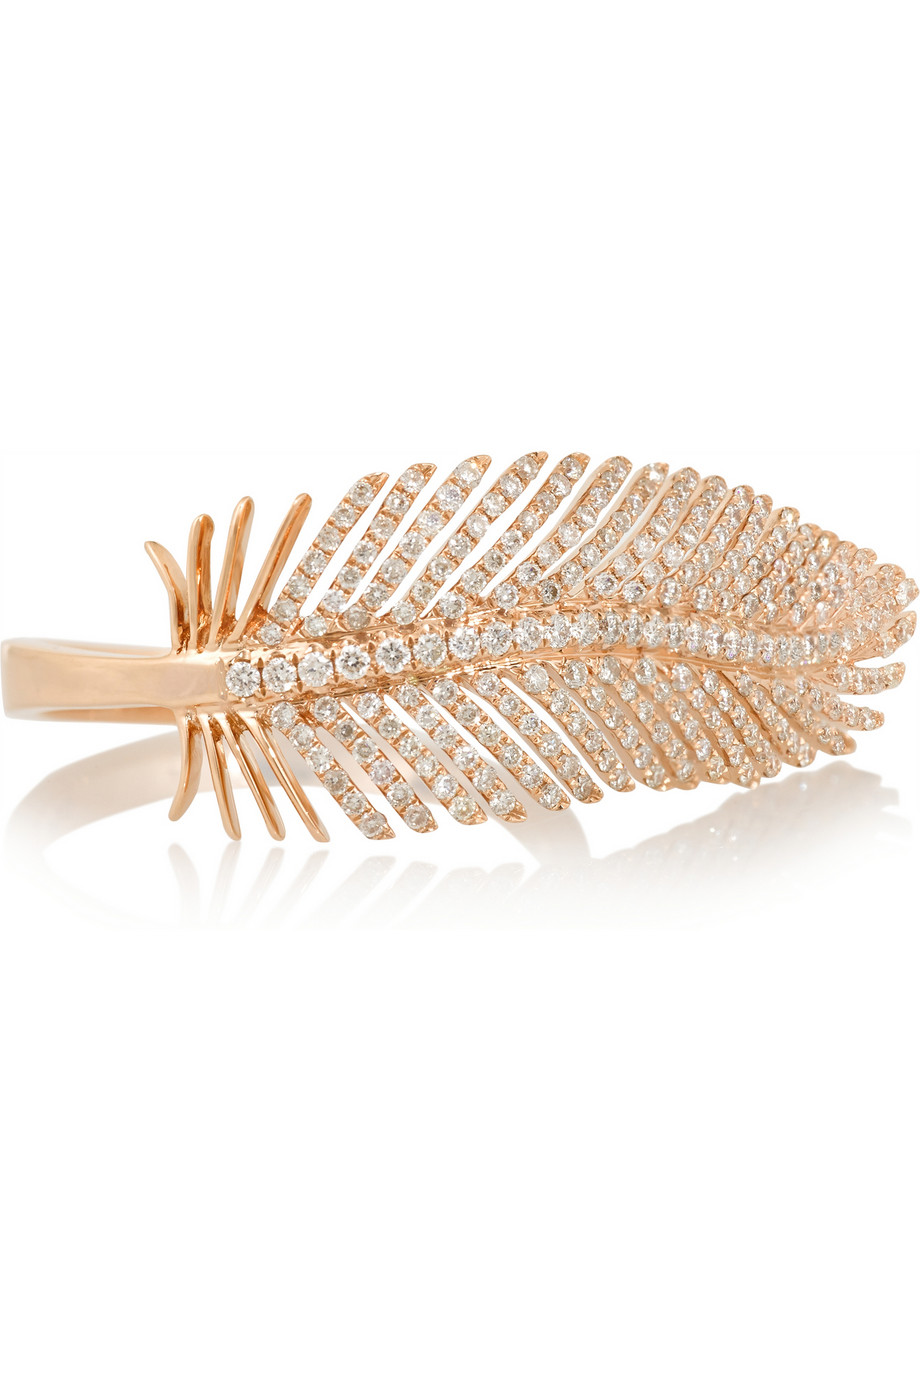 Anita Ko  Feather 18-karat rose gold diamond ring, $5,500,  available at Net-A-Porter.